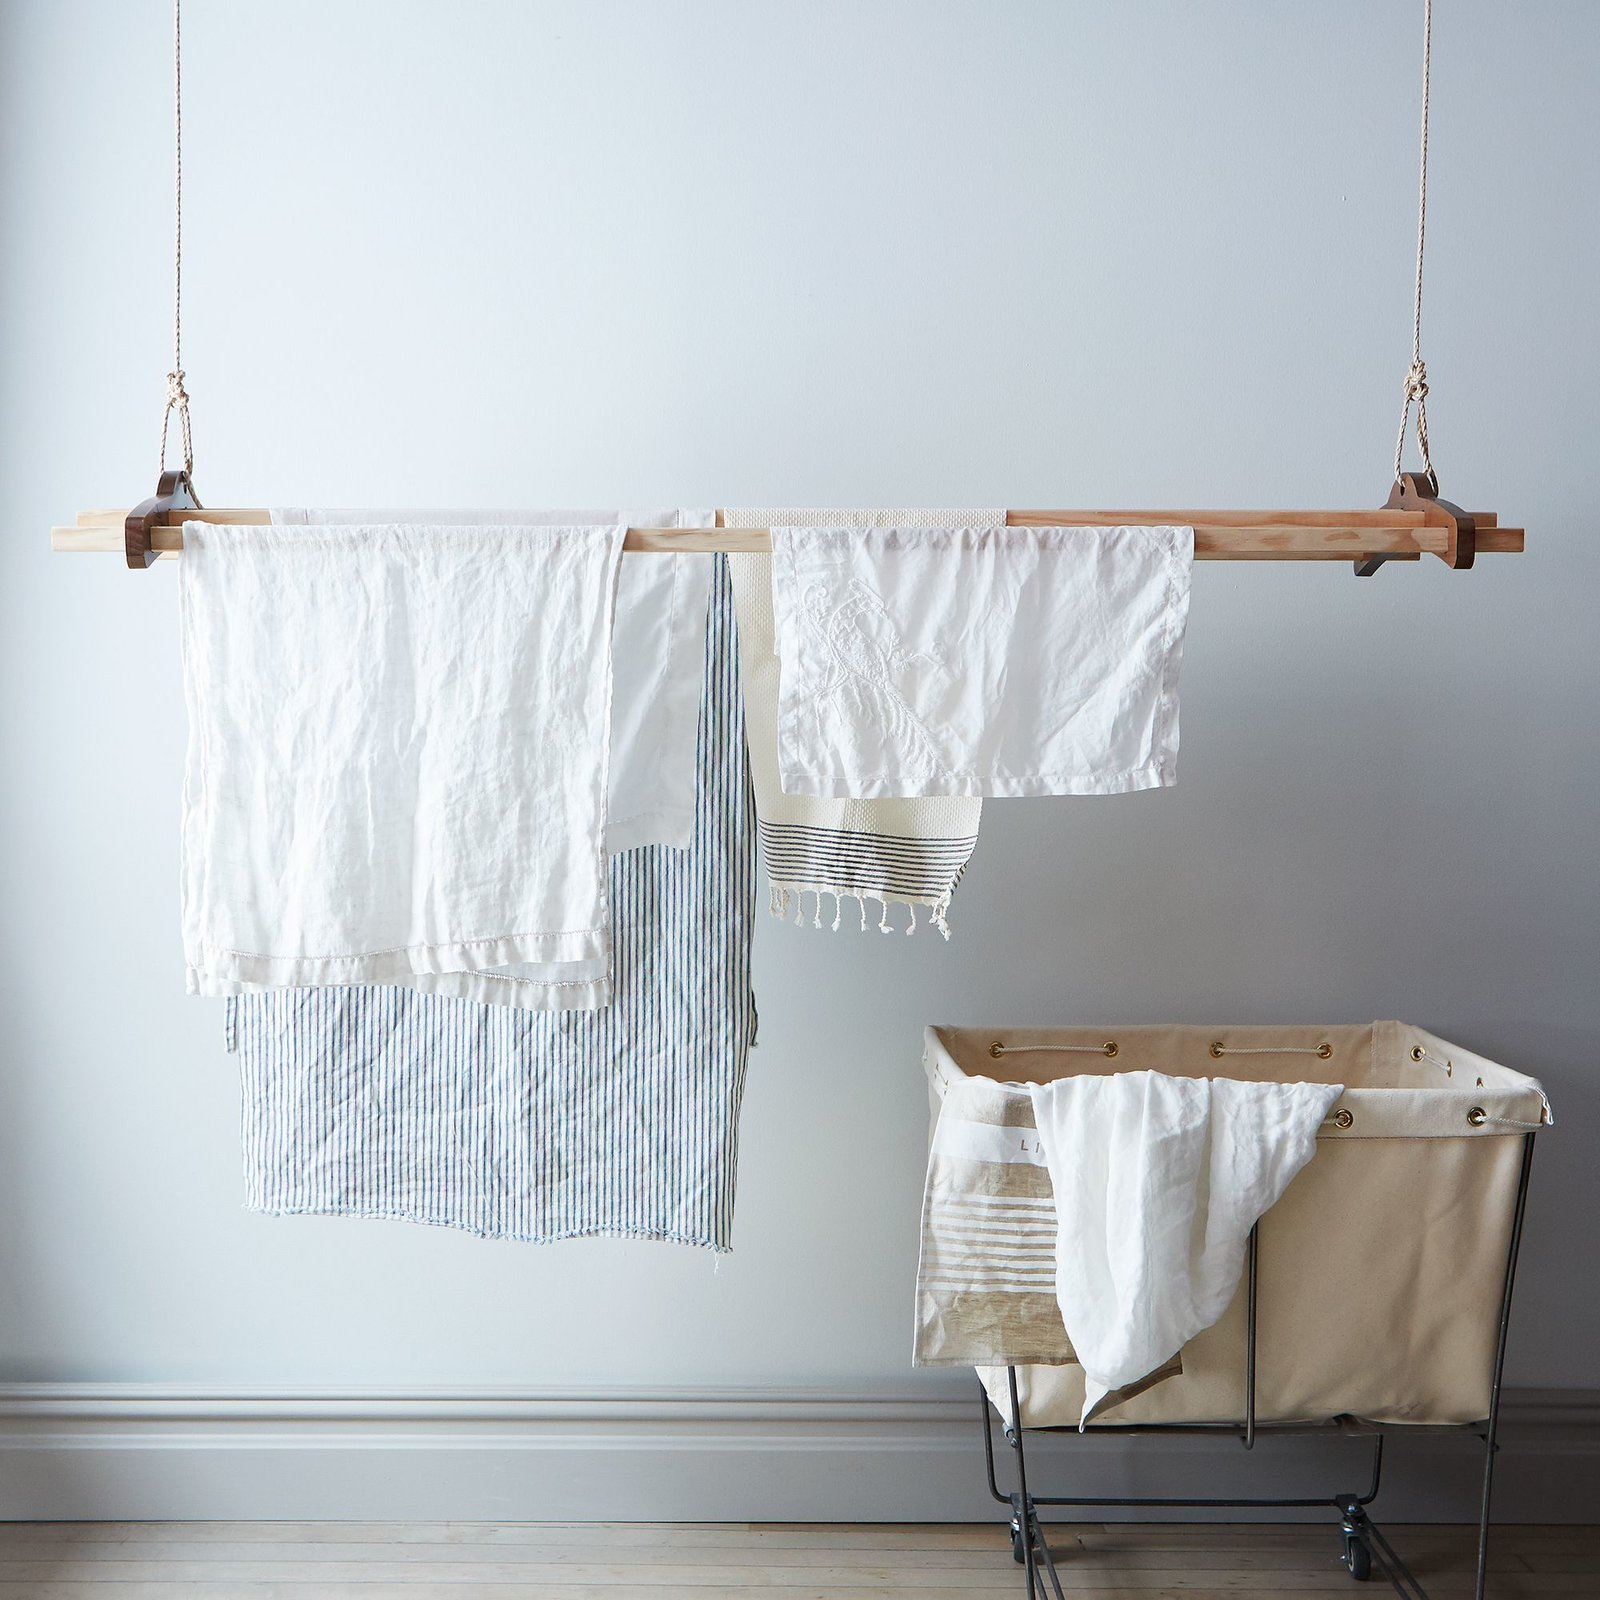 #Food52 #laundry #rack Tagged: Laundry.  Best Laundry Photos from Laundry